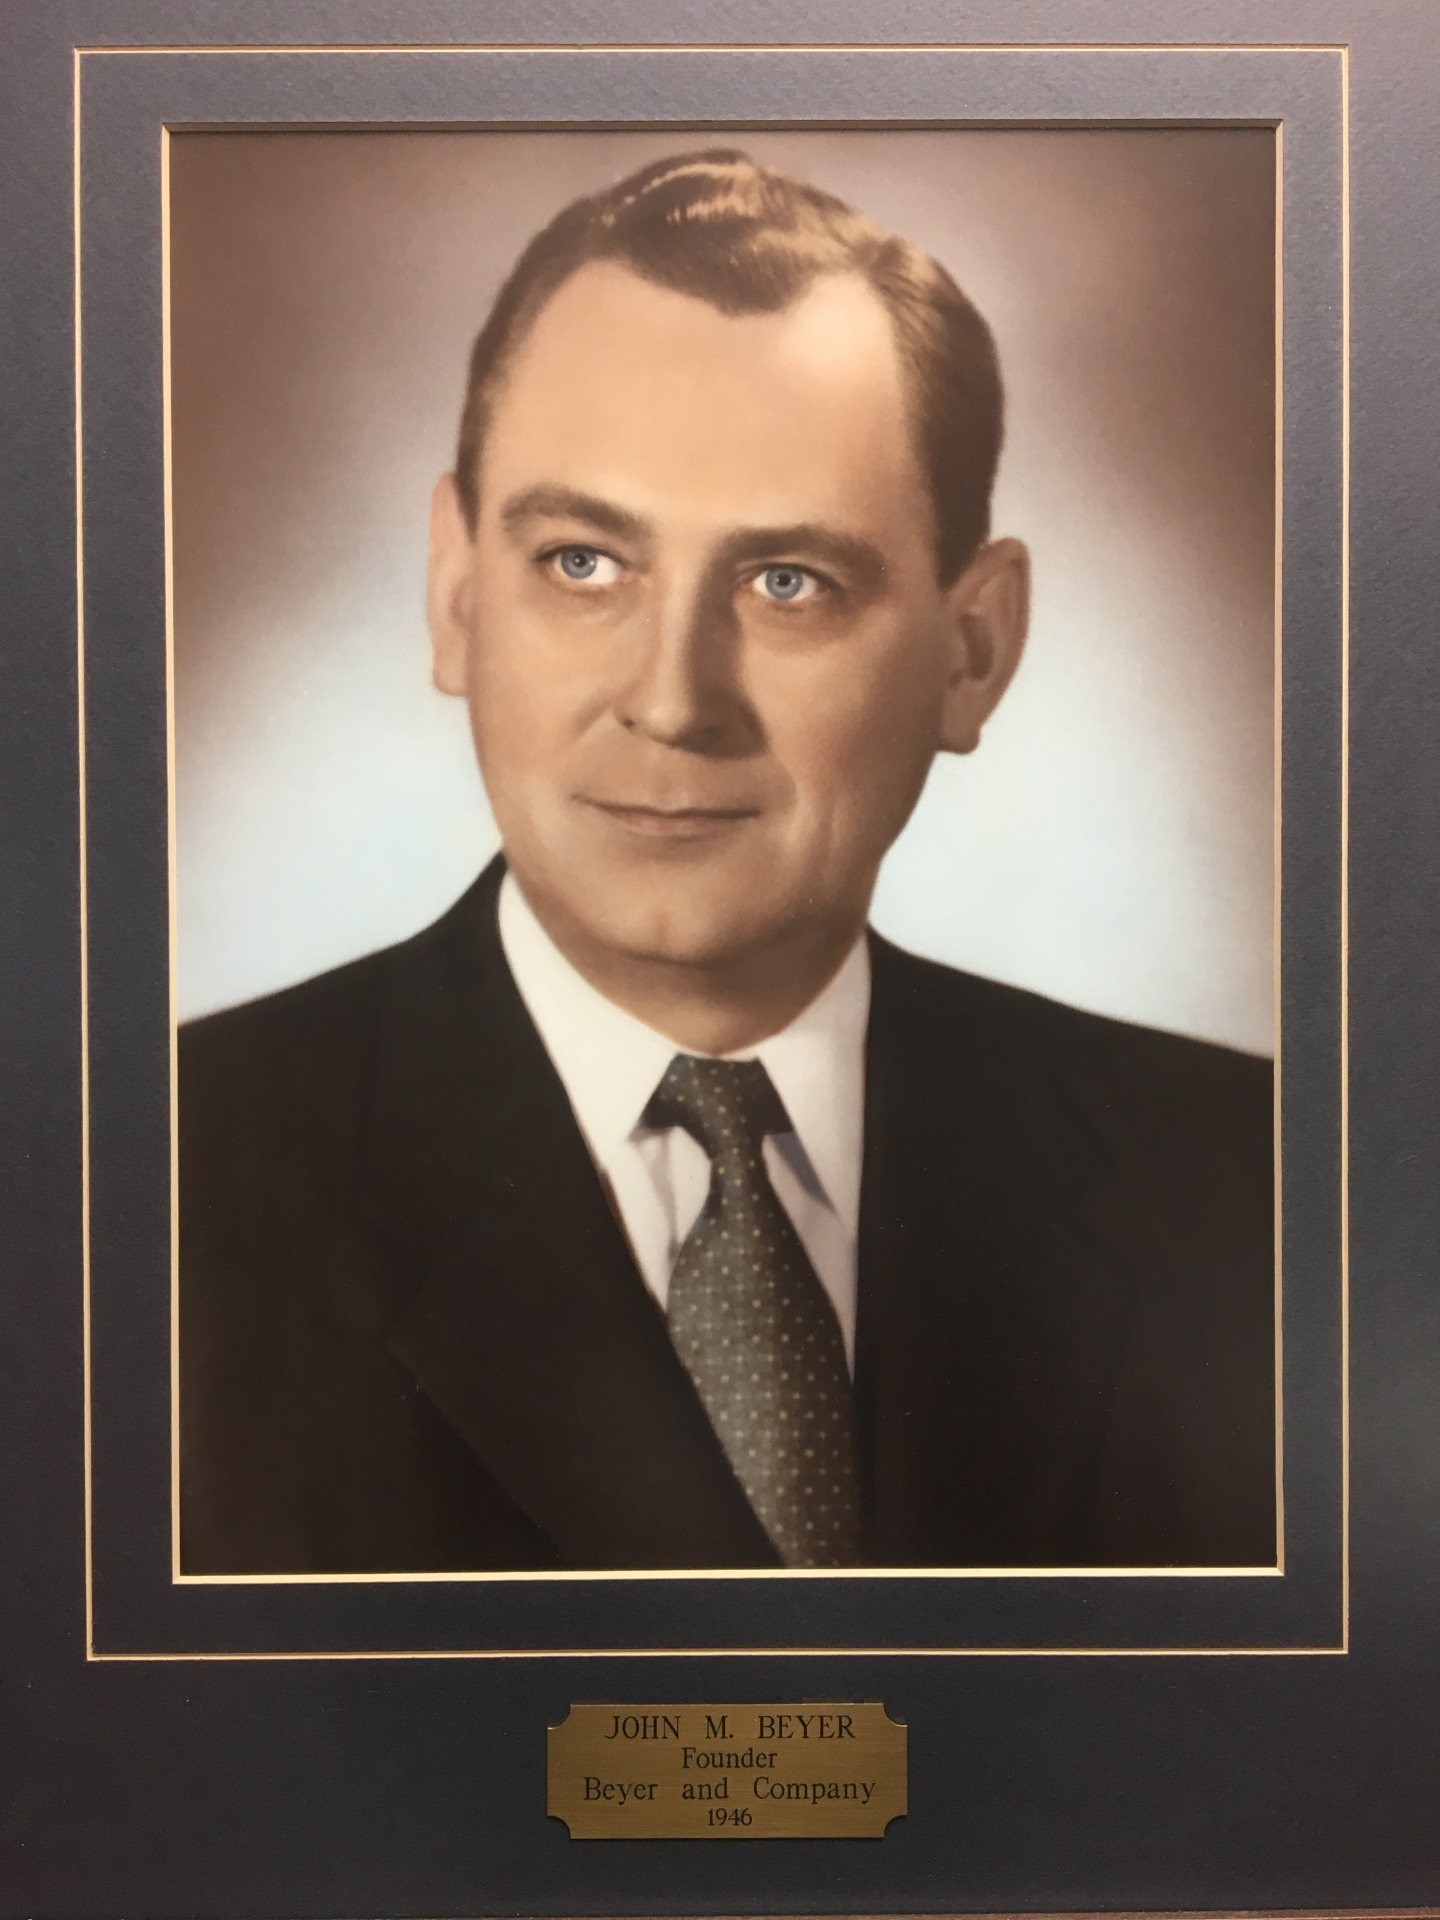 John M Beyer Sr Founder of Beyer & Co. Investments 1946